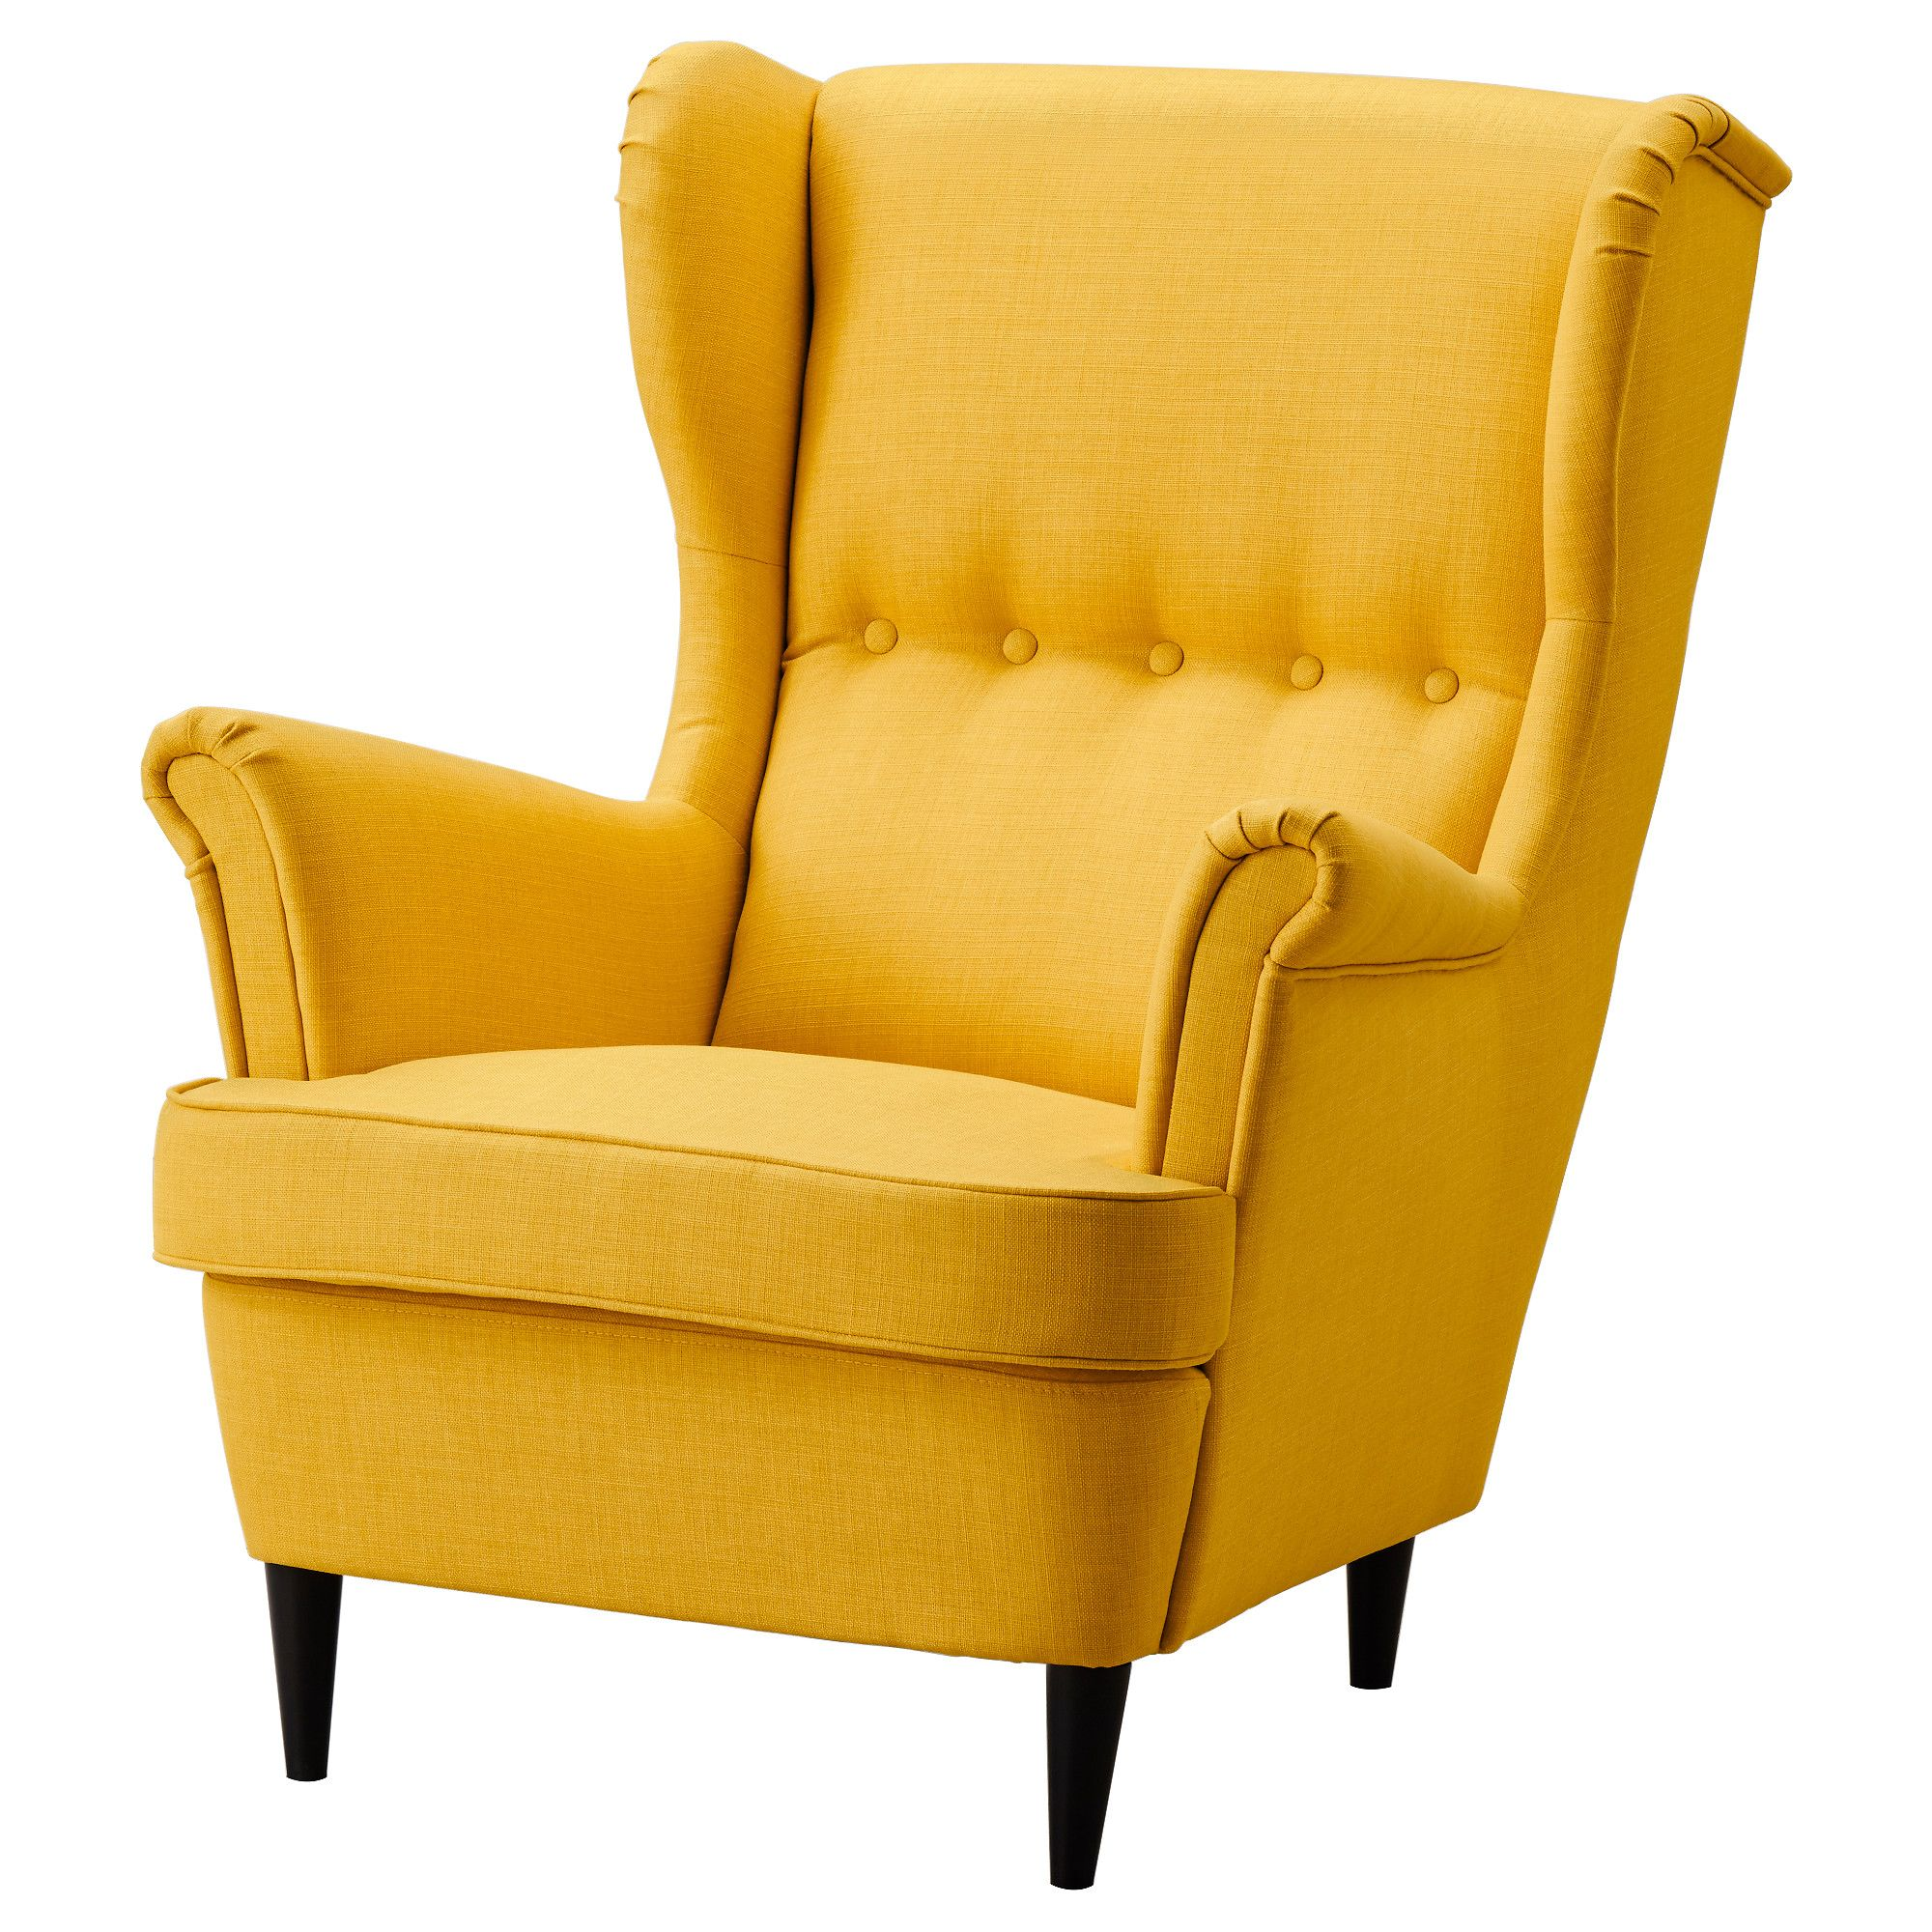 Ikea Strandmon Wing Chair Skiftebo Yellow 10 Year Limited  ~ Sillon Relax Muy Barato Por Cierre